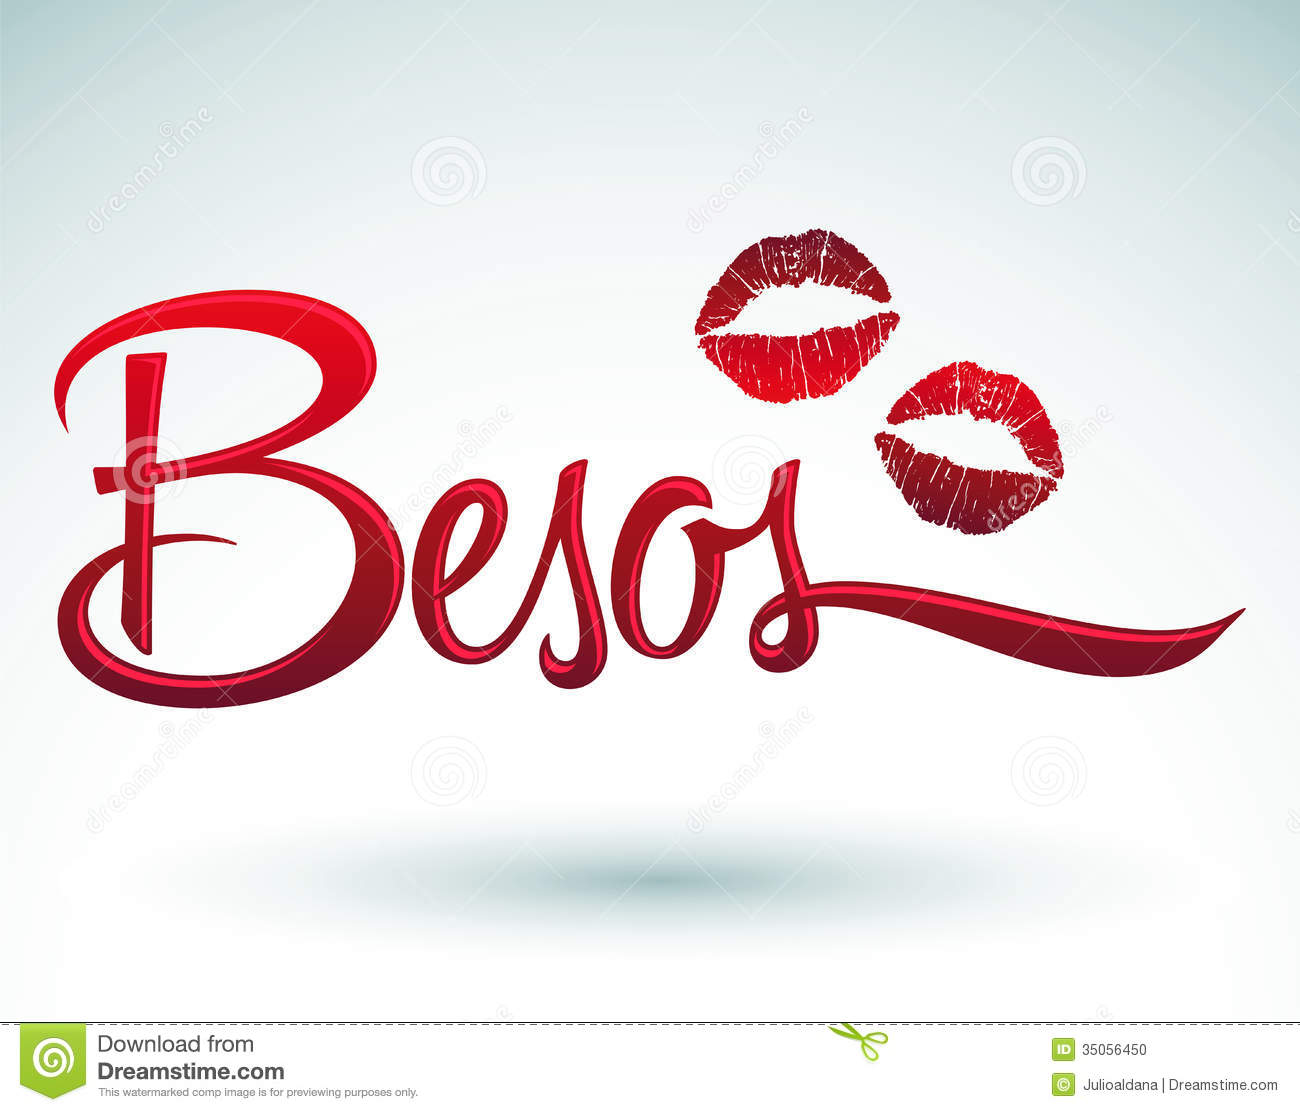 Besos Kisses Spanish Text Stock Photo Image 35056450